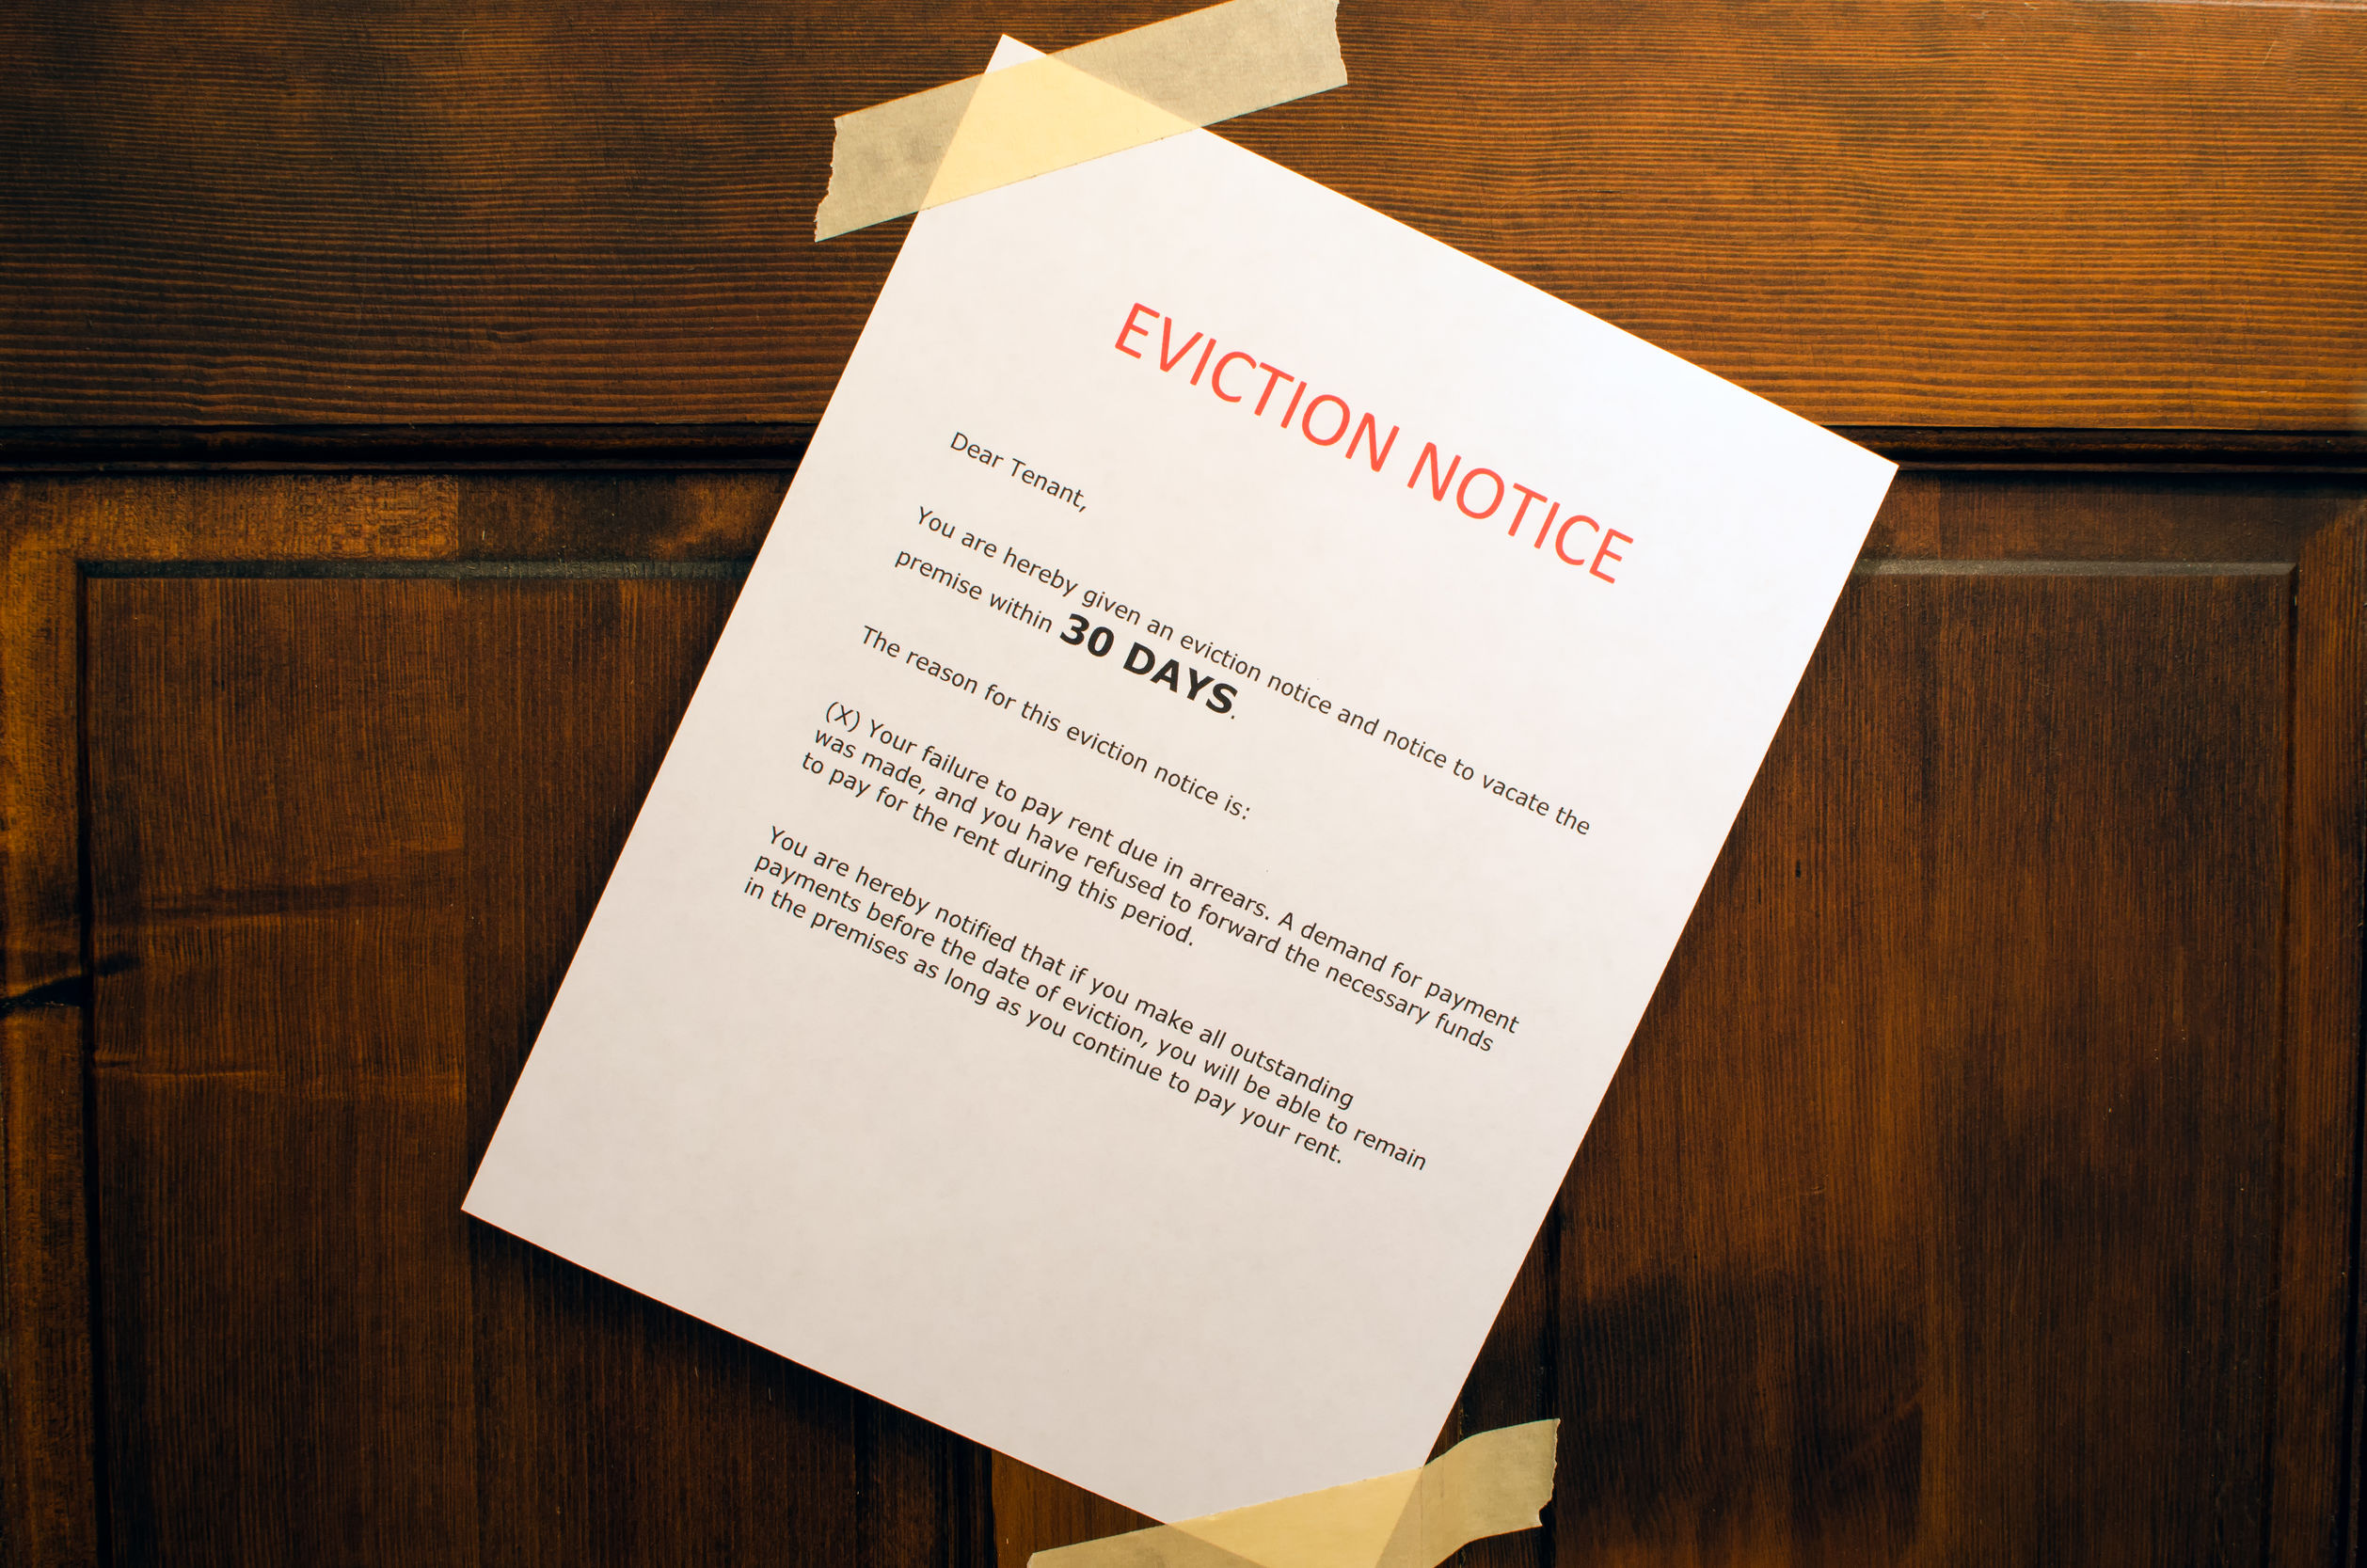 Eviction - How to Avoid It